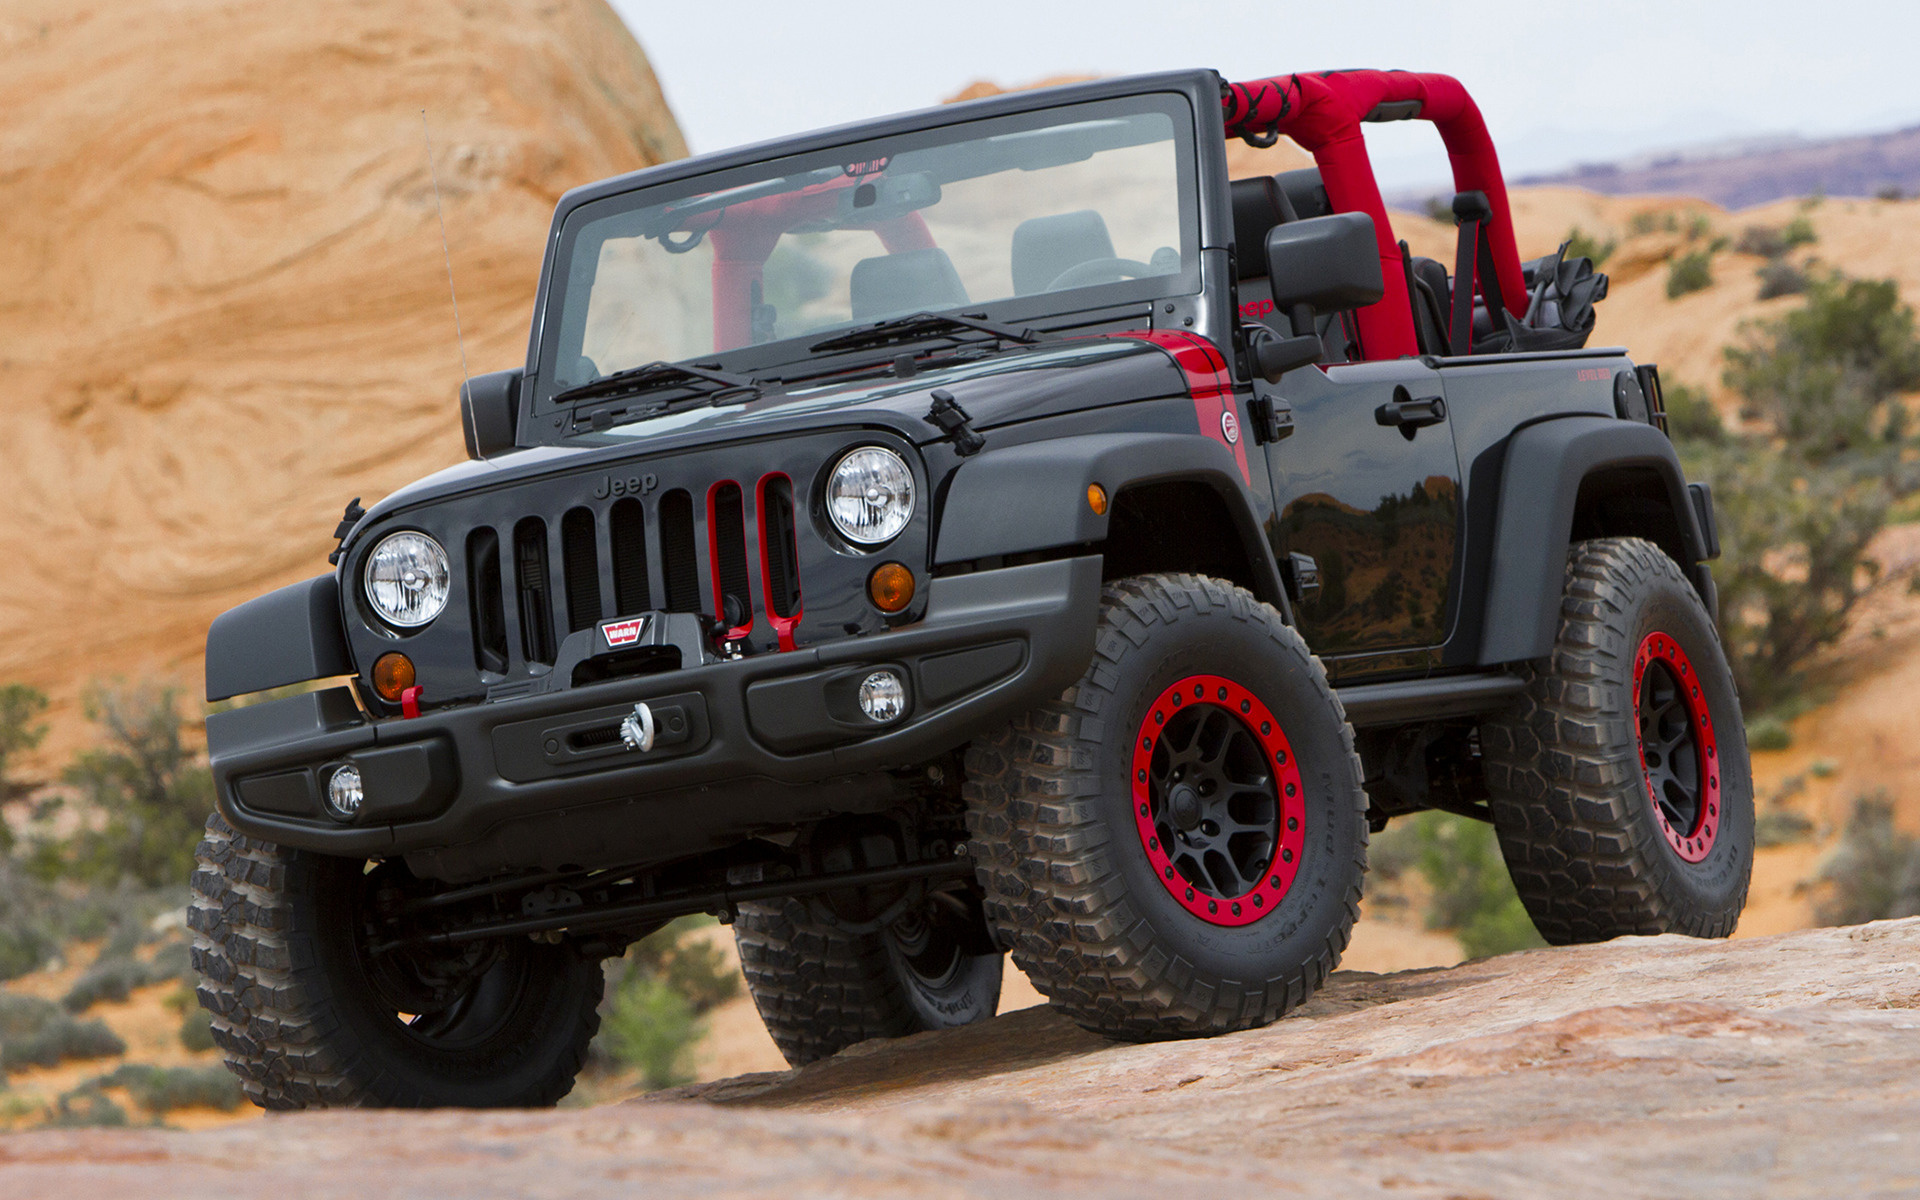 Jeep Car Images Hd: 2014 Jeep Wrangler Level Red Concept